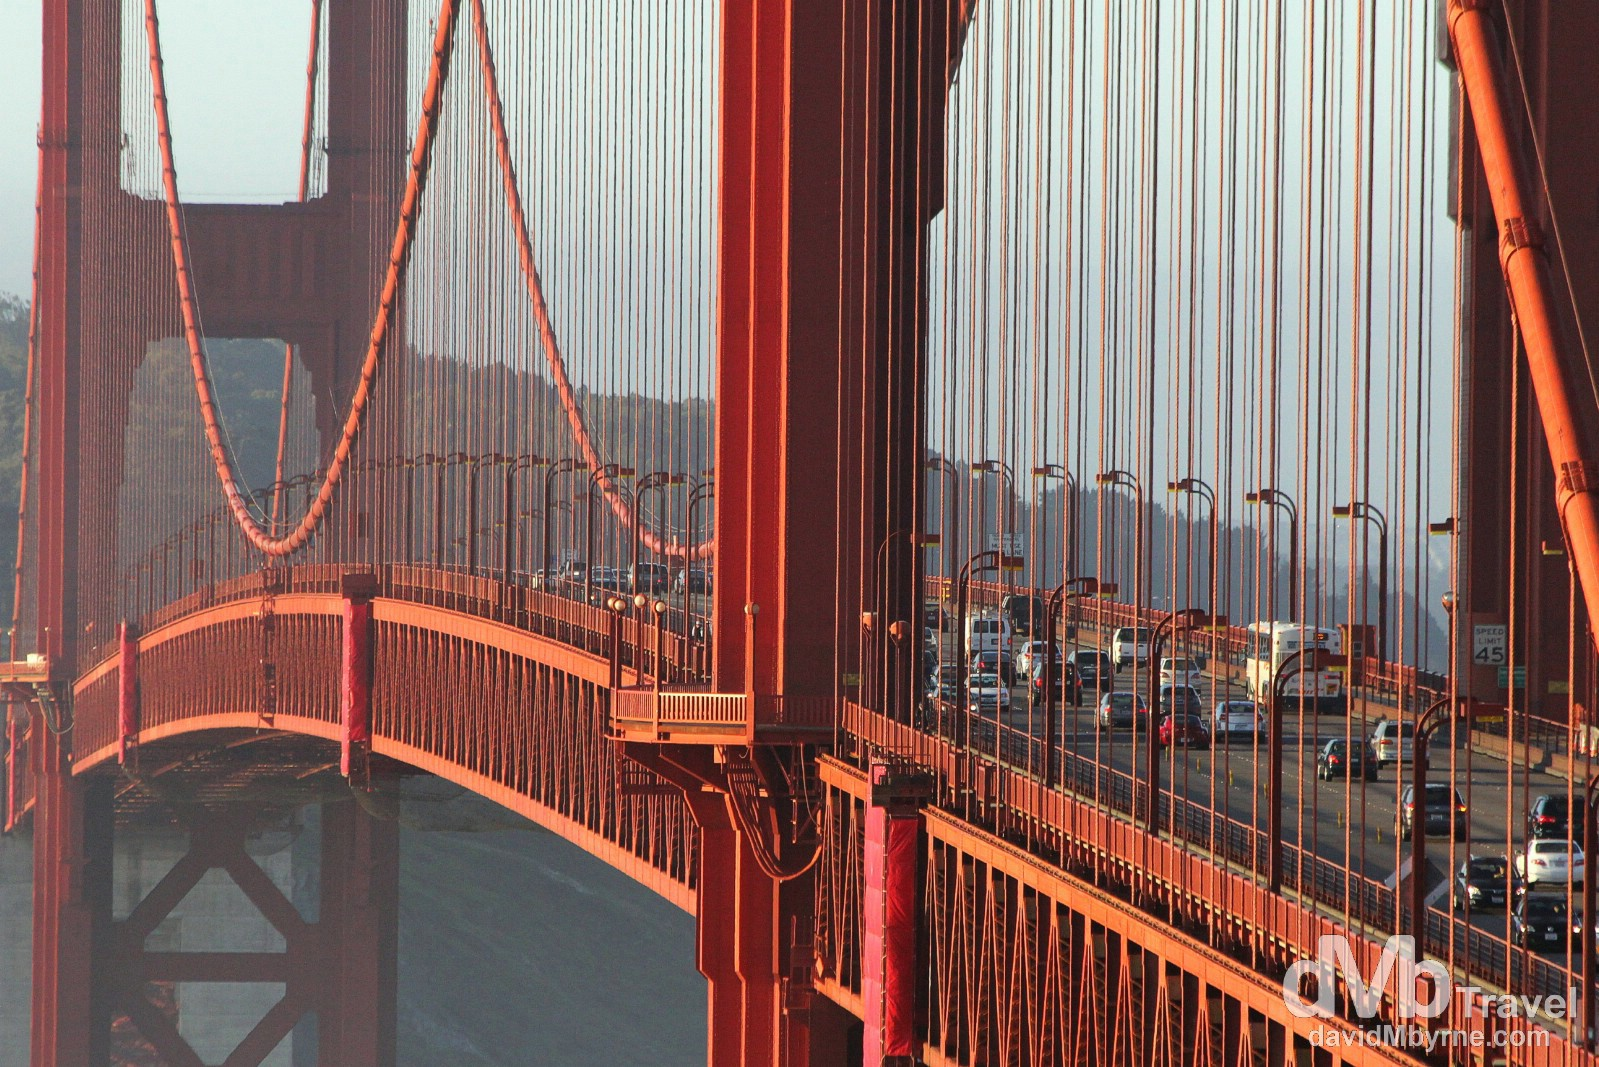 Sunrise light illuminates the span of The Golden Gate Bridge as seen from Vista Point on the north-eastern side of the bridge. San Francisco, California, USA. April 11th 2013.